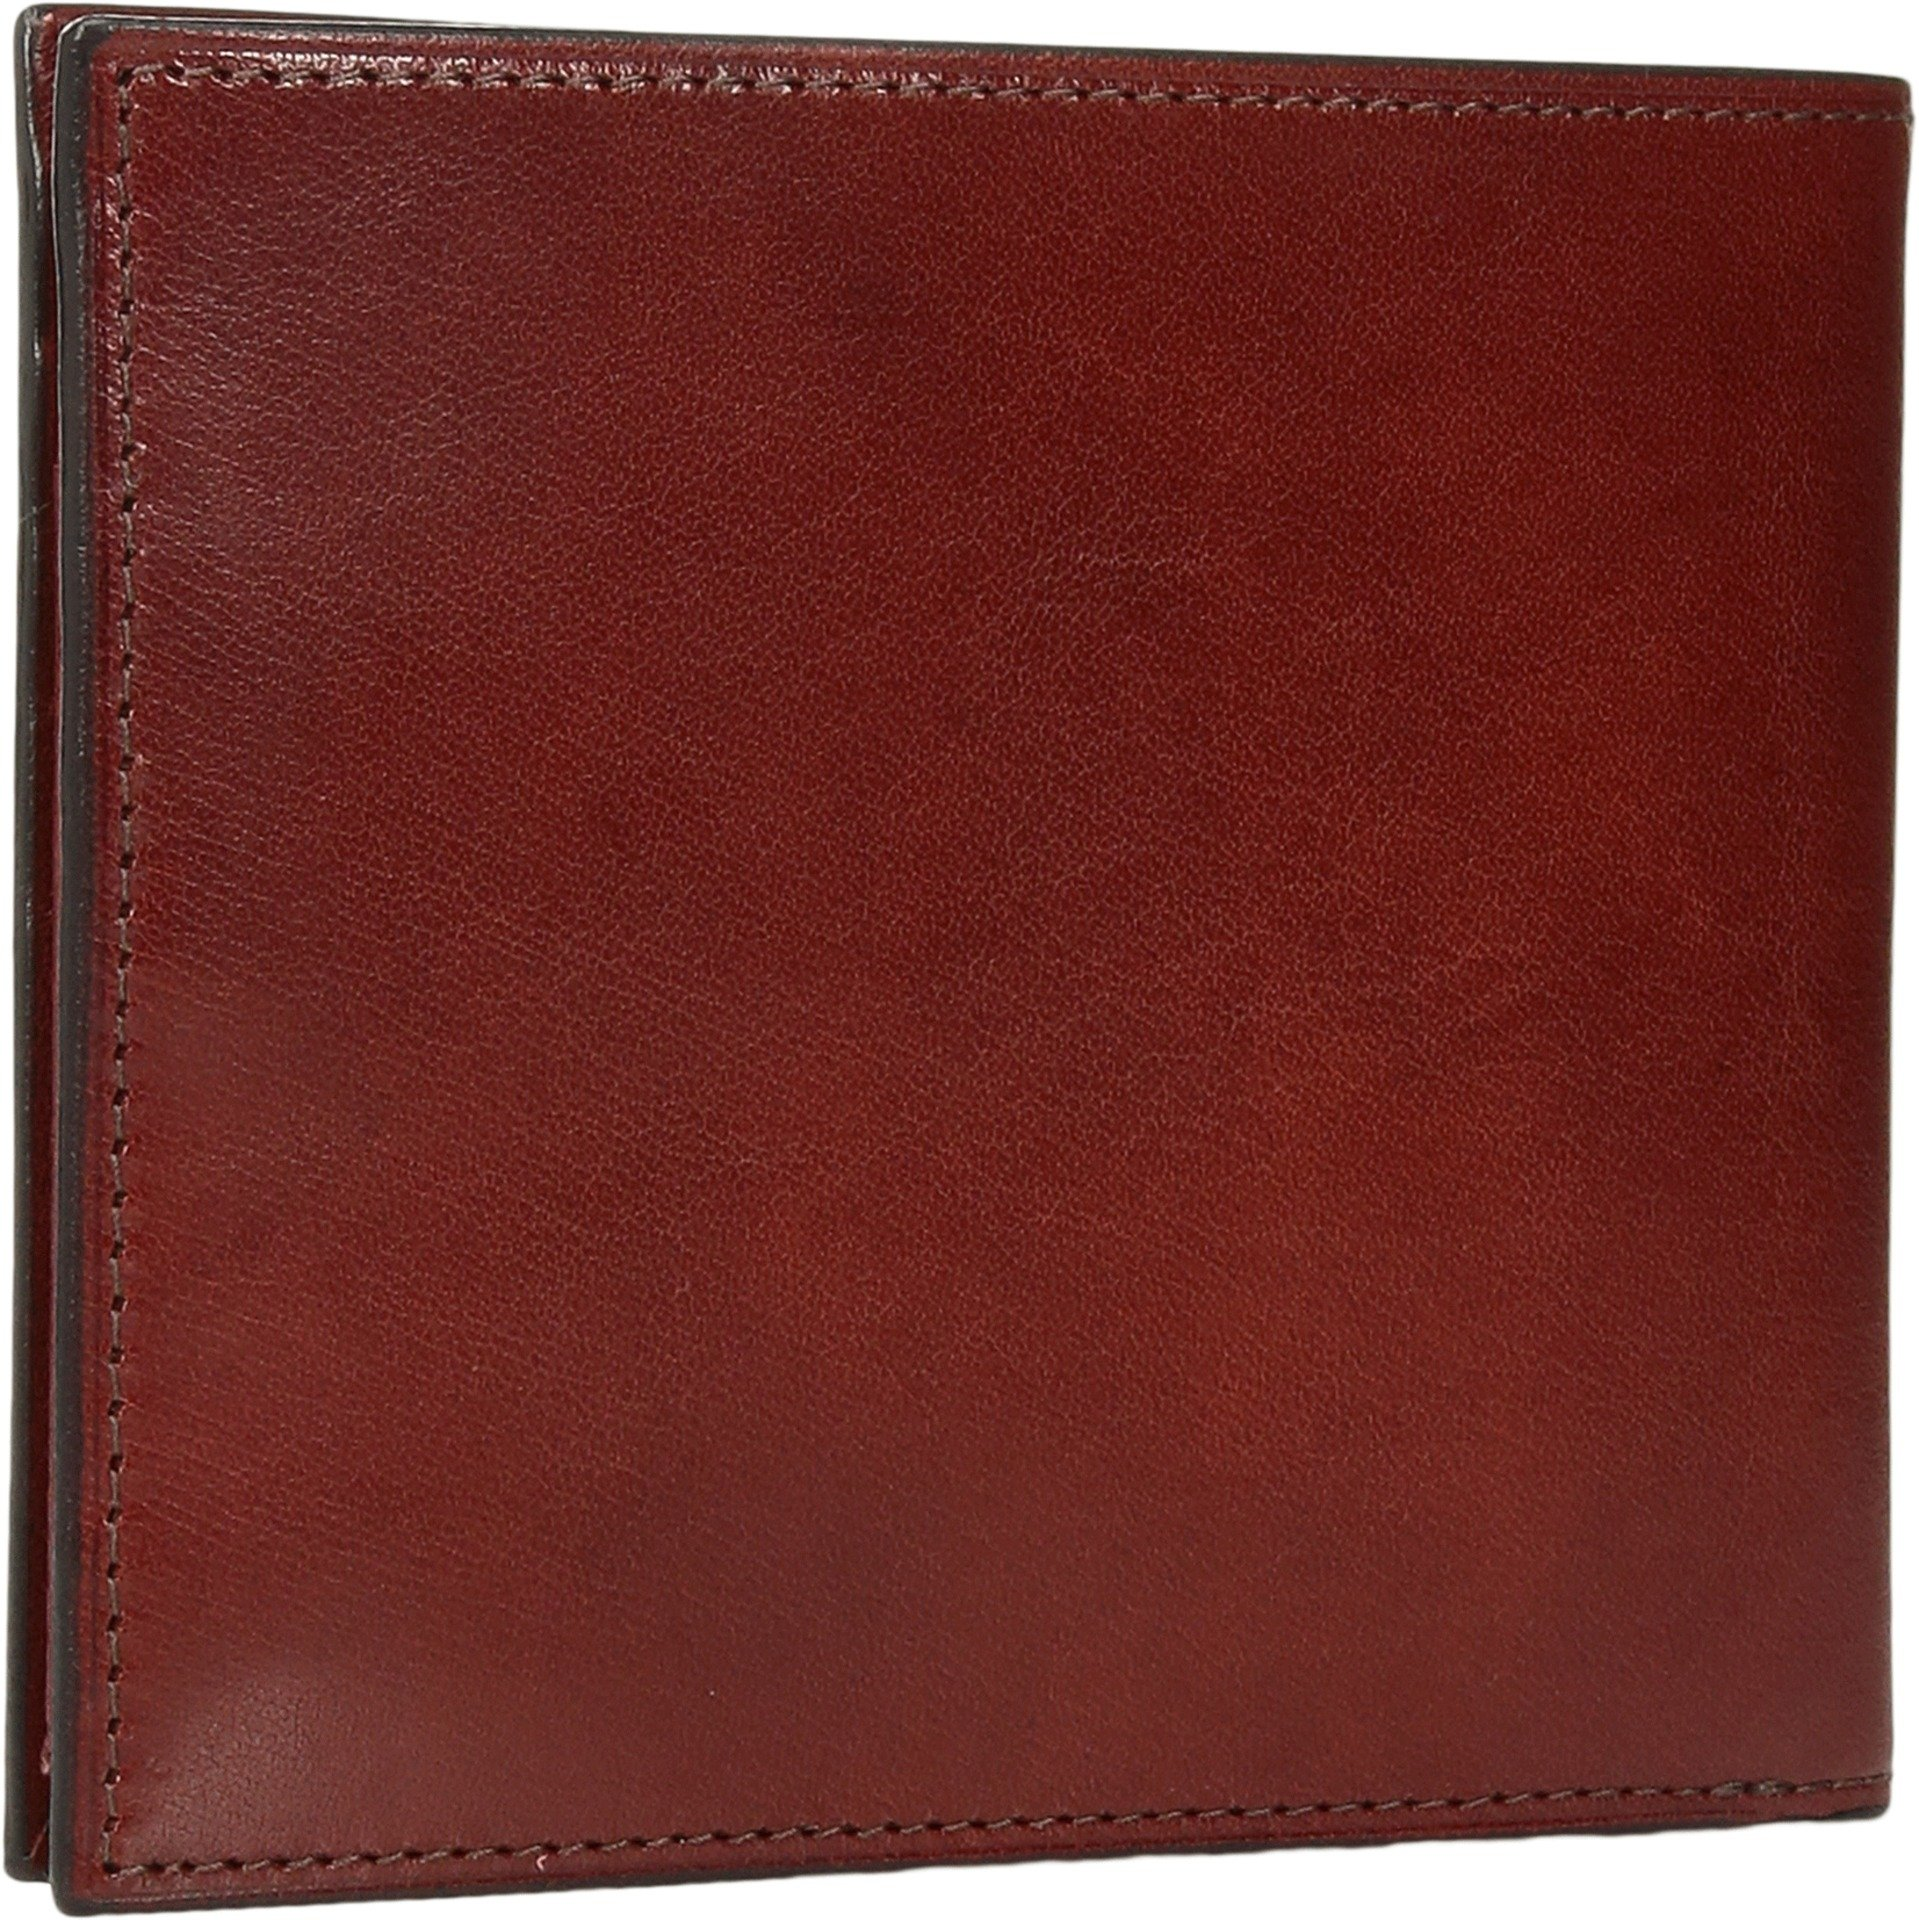 Bosca Men's Old Leather Collection - Eight-Pocket Deluxe Executive Wallet w/Passcase (Cognac) by Bosca (Image #2)